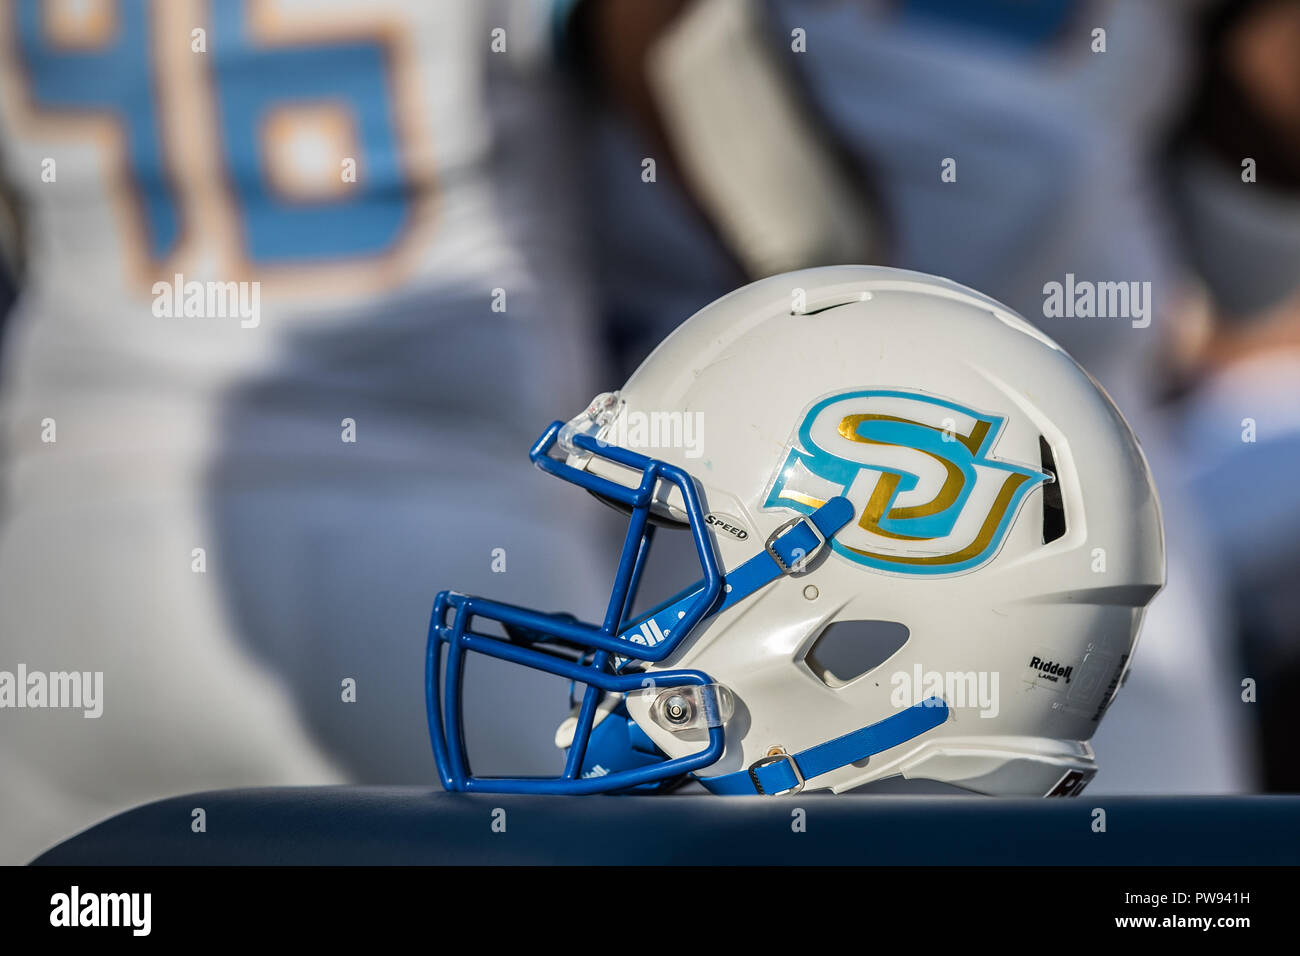 A Southern University Jaguars Helmet Rests On The Sideline During The NCAA  Football Game Between The Southern University Jaguars And The Prairie View  Au0026M ...